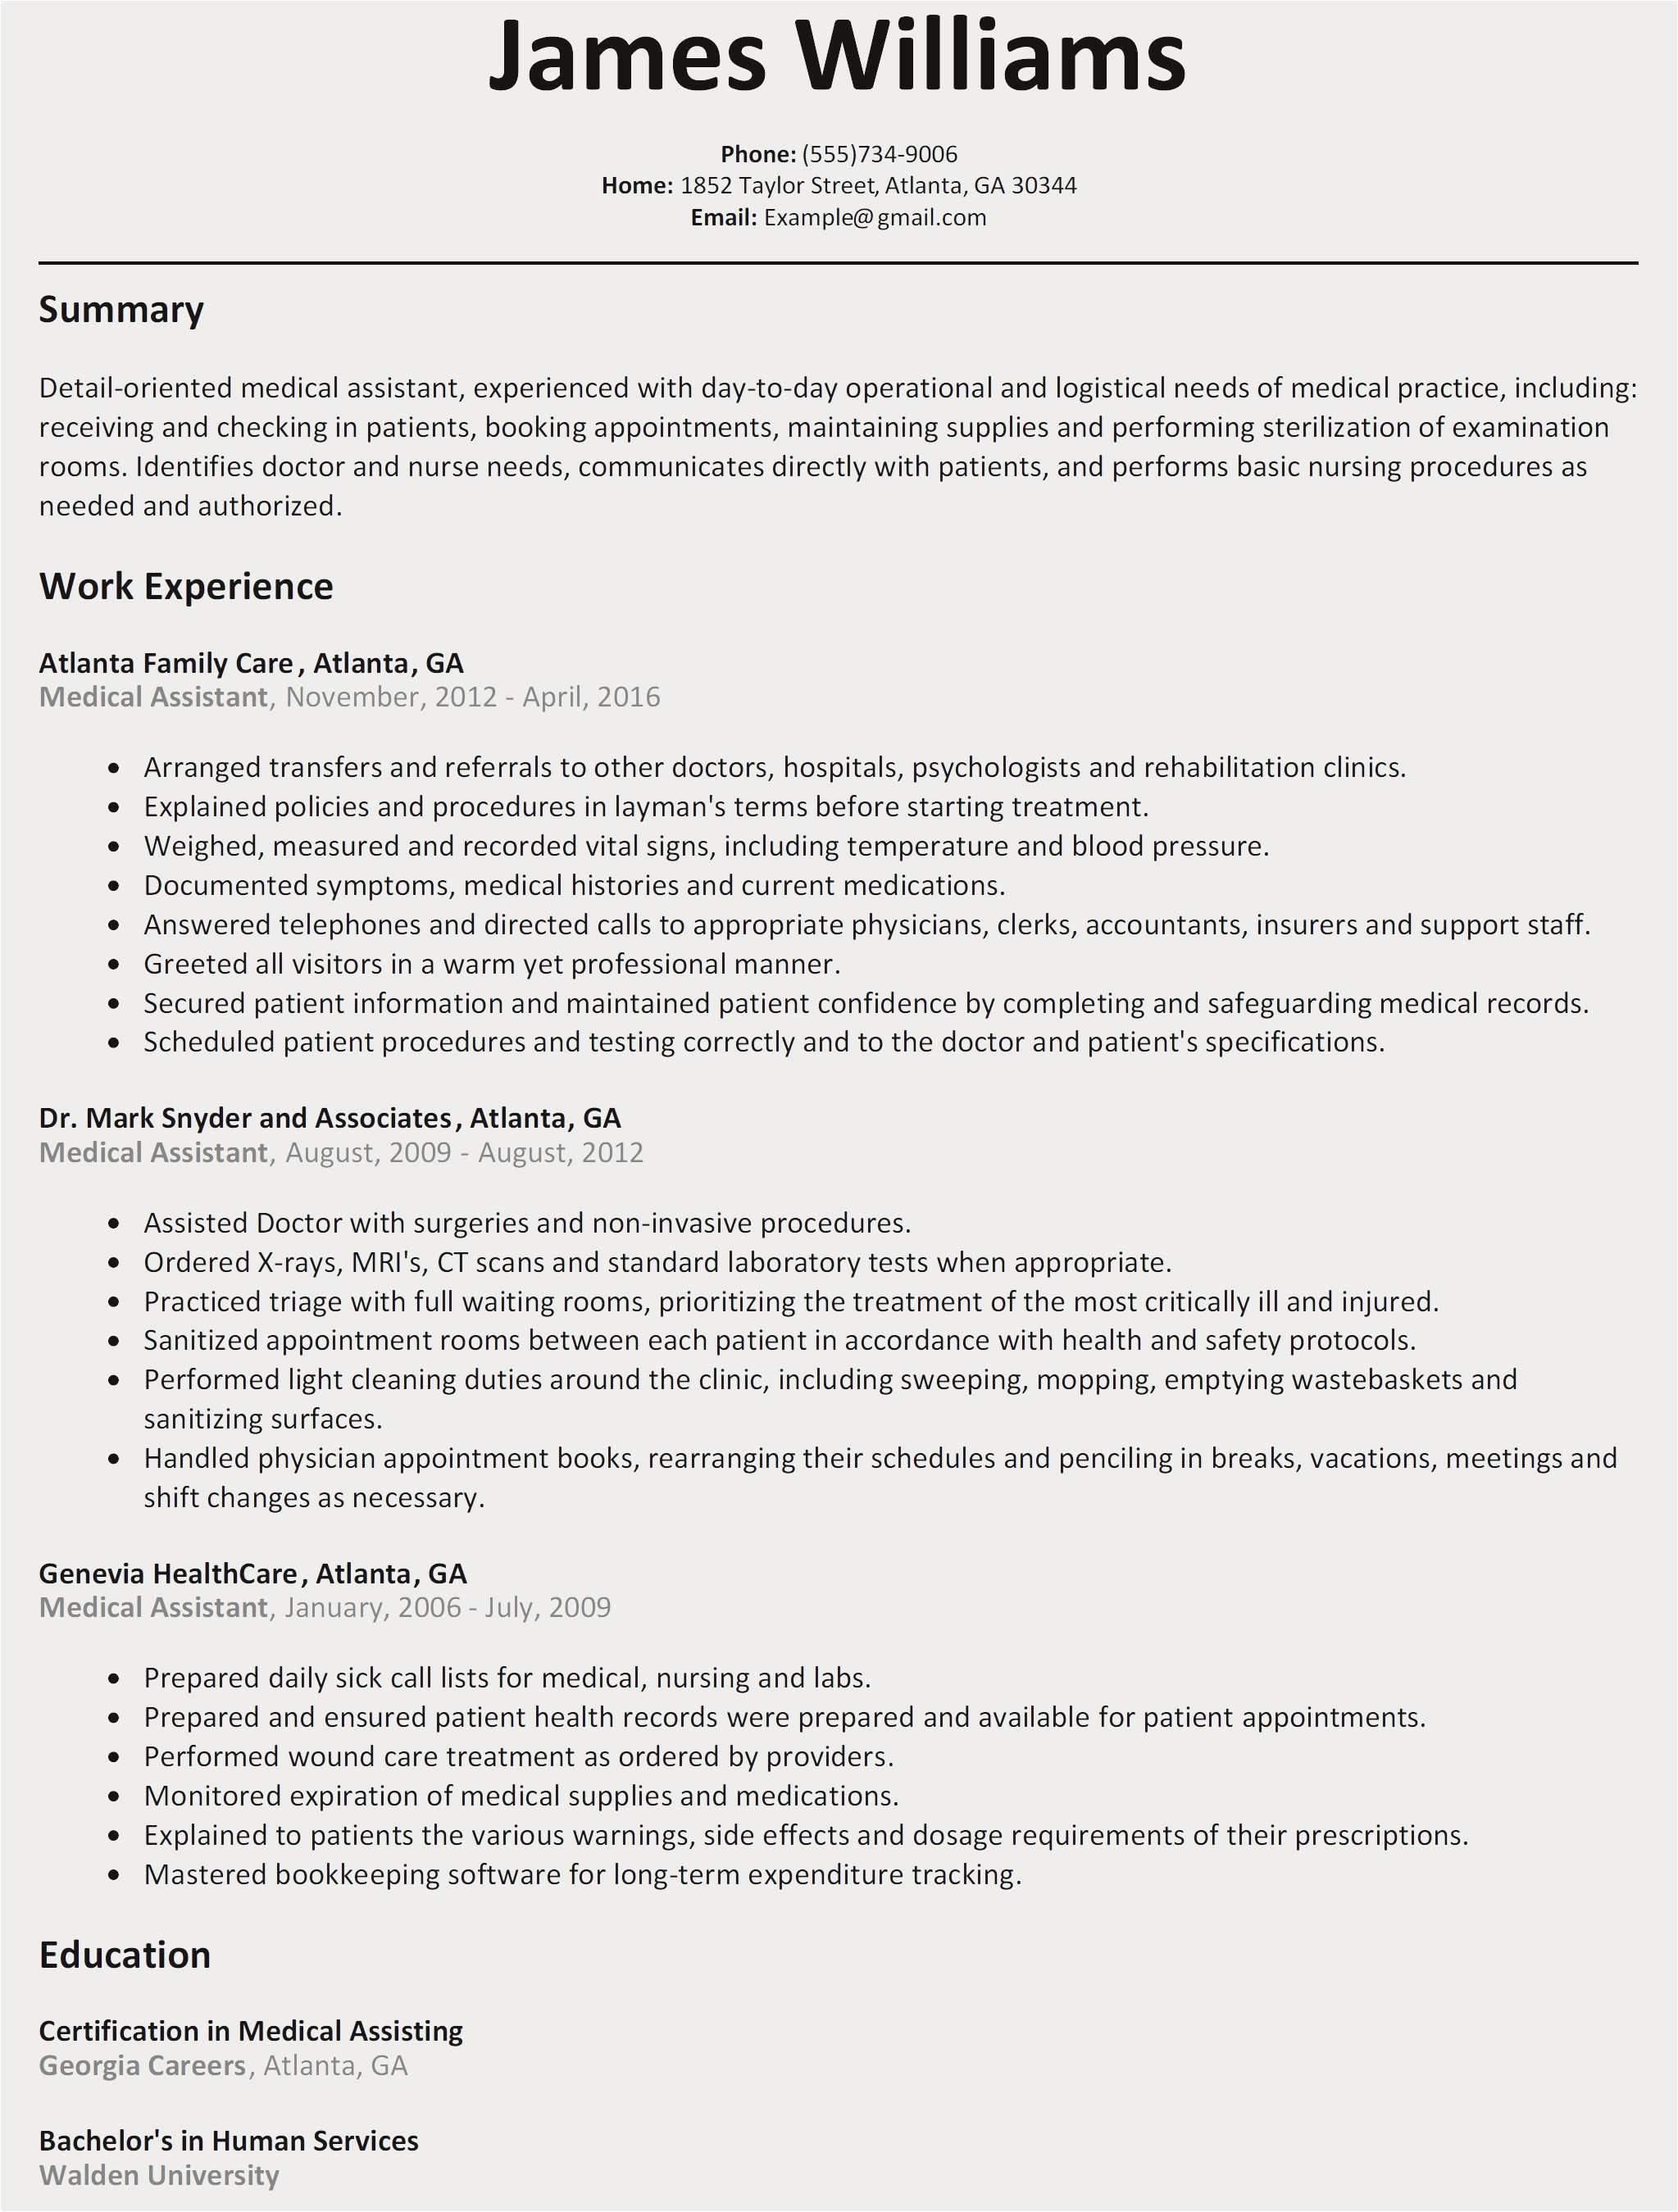 Career Fair Resume Template - Free Basic Resume Template Free Resume Template for Microsoft